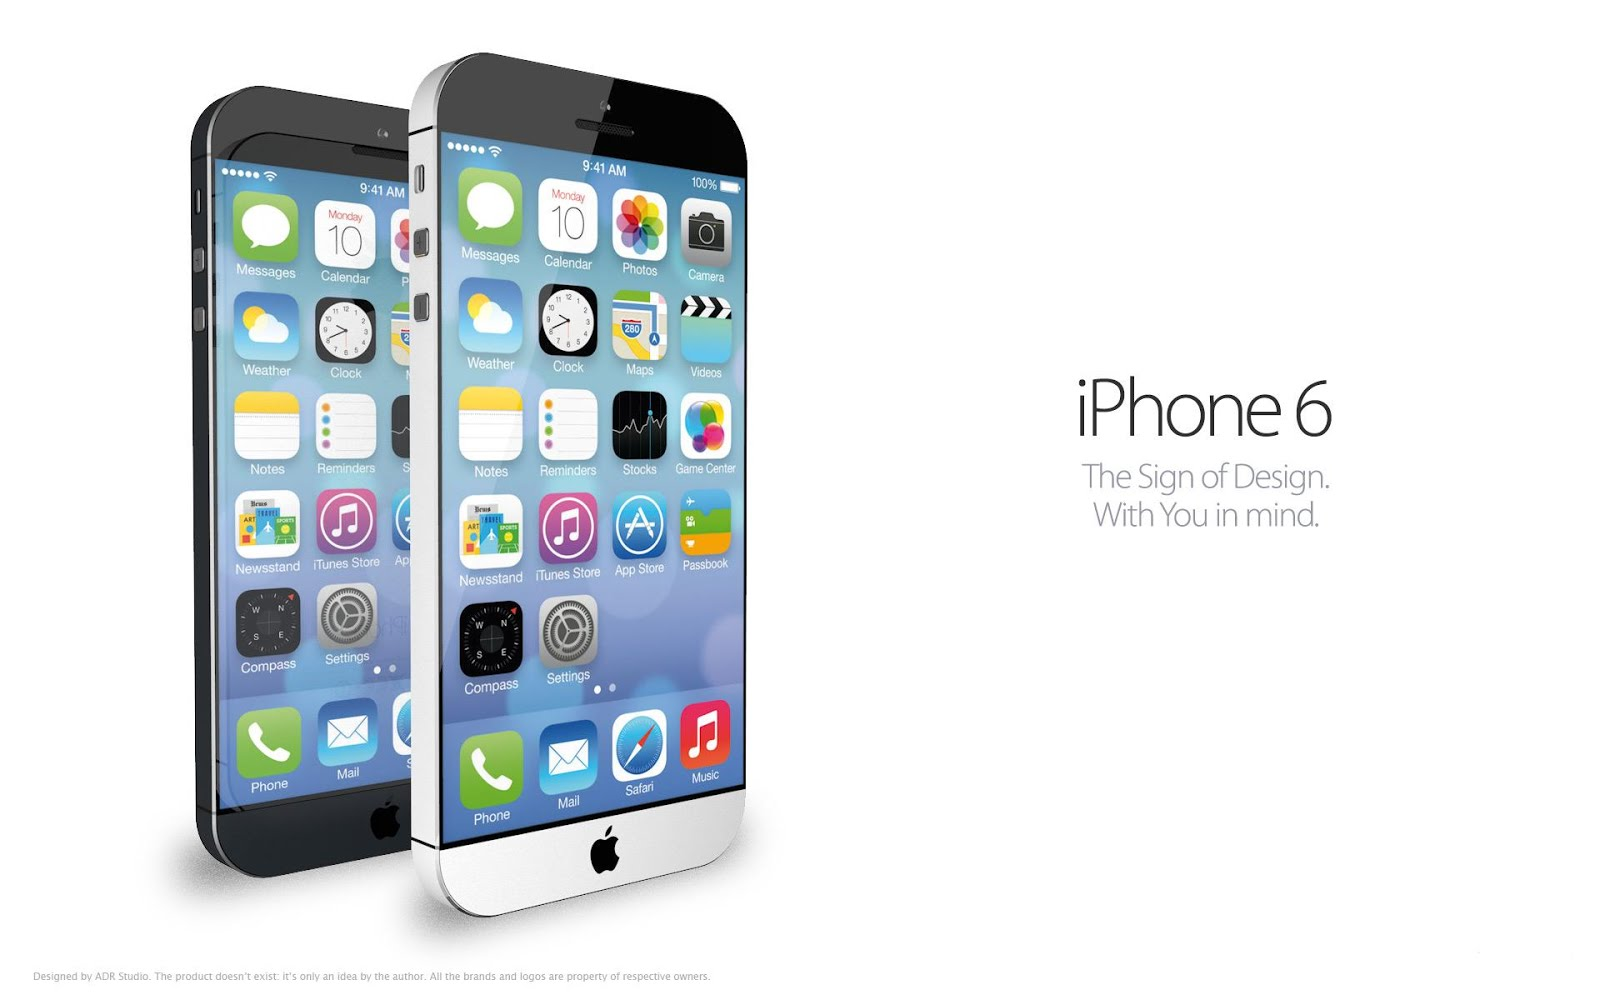 Apple Iphone 6 2013 - 2014